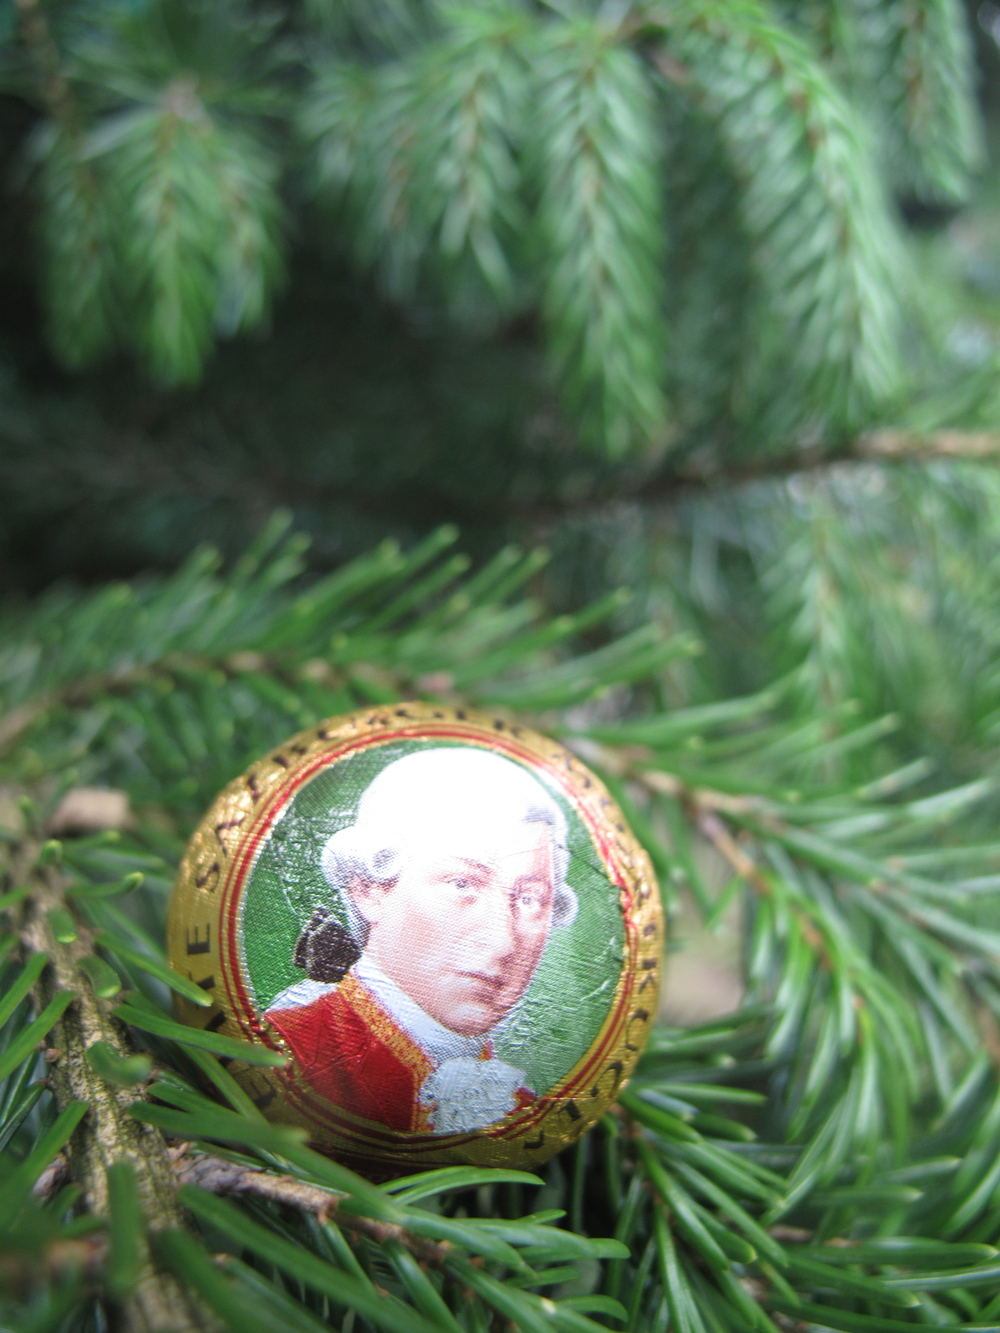 Mozartkugel - austrian chocolate balls with a picture of Mozart on the wrapper.